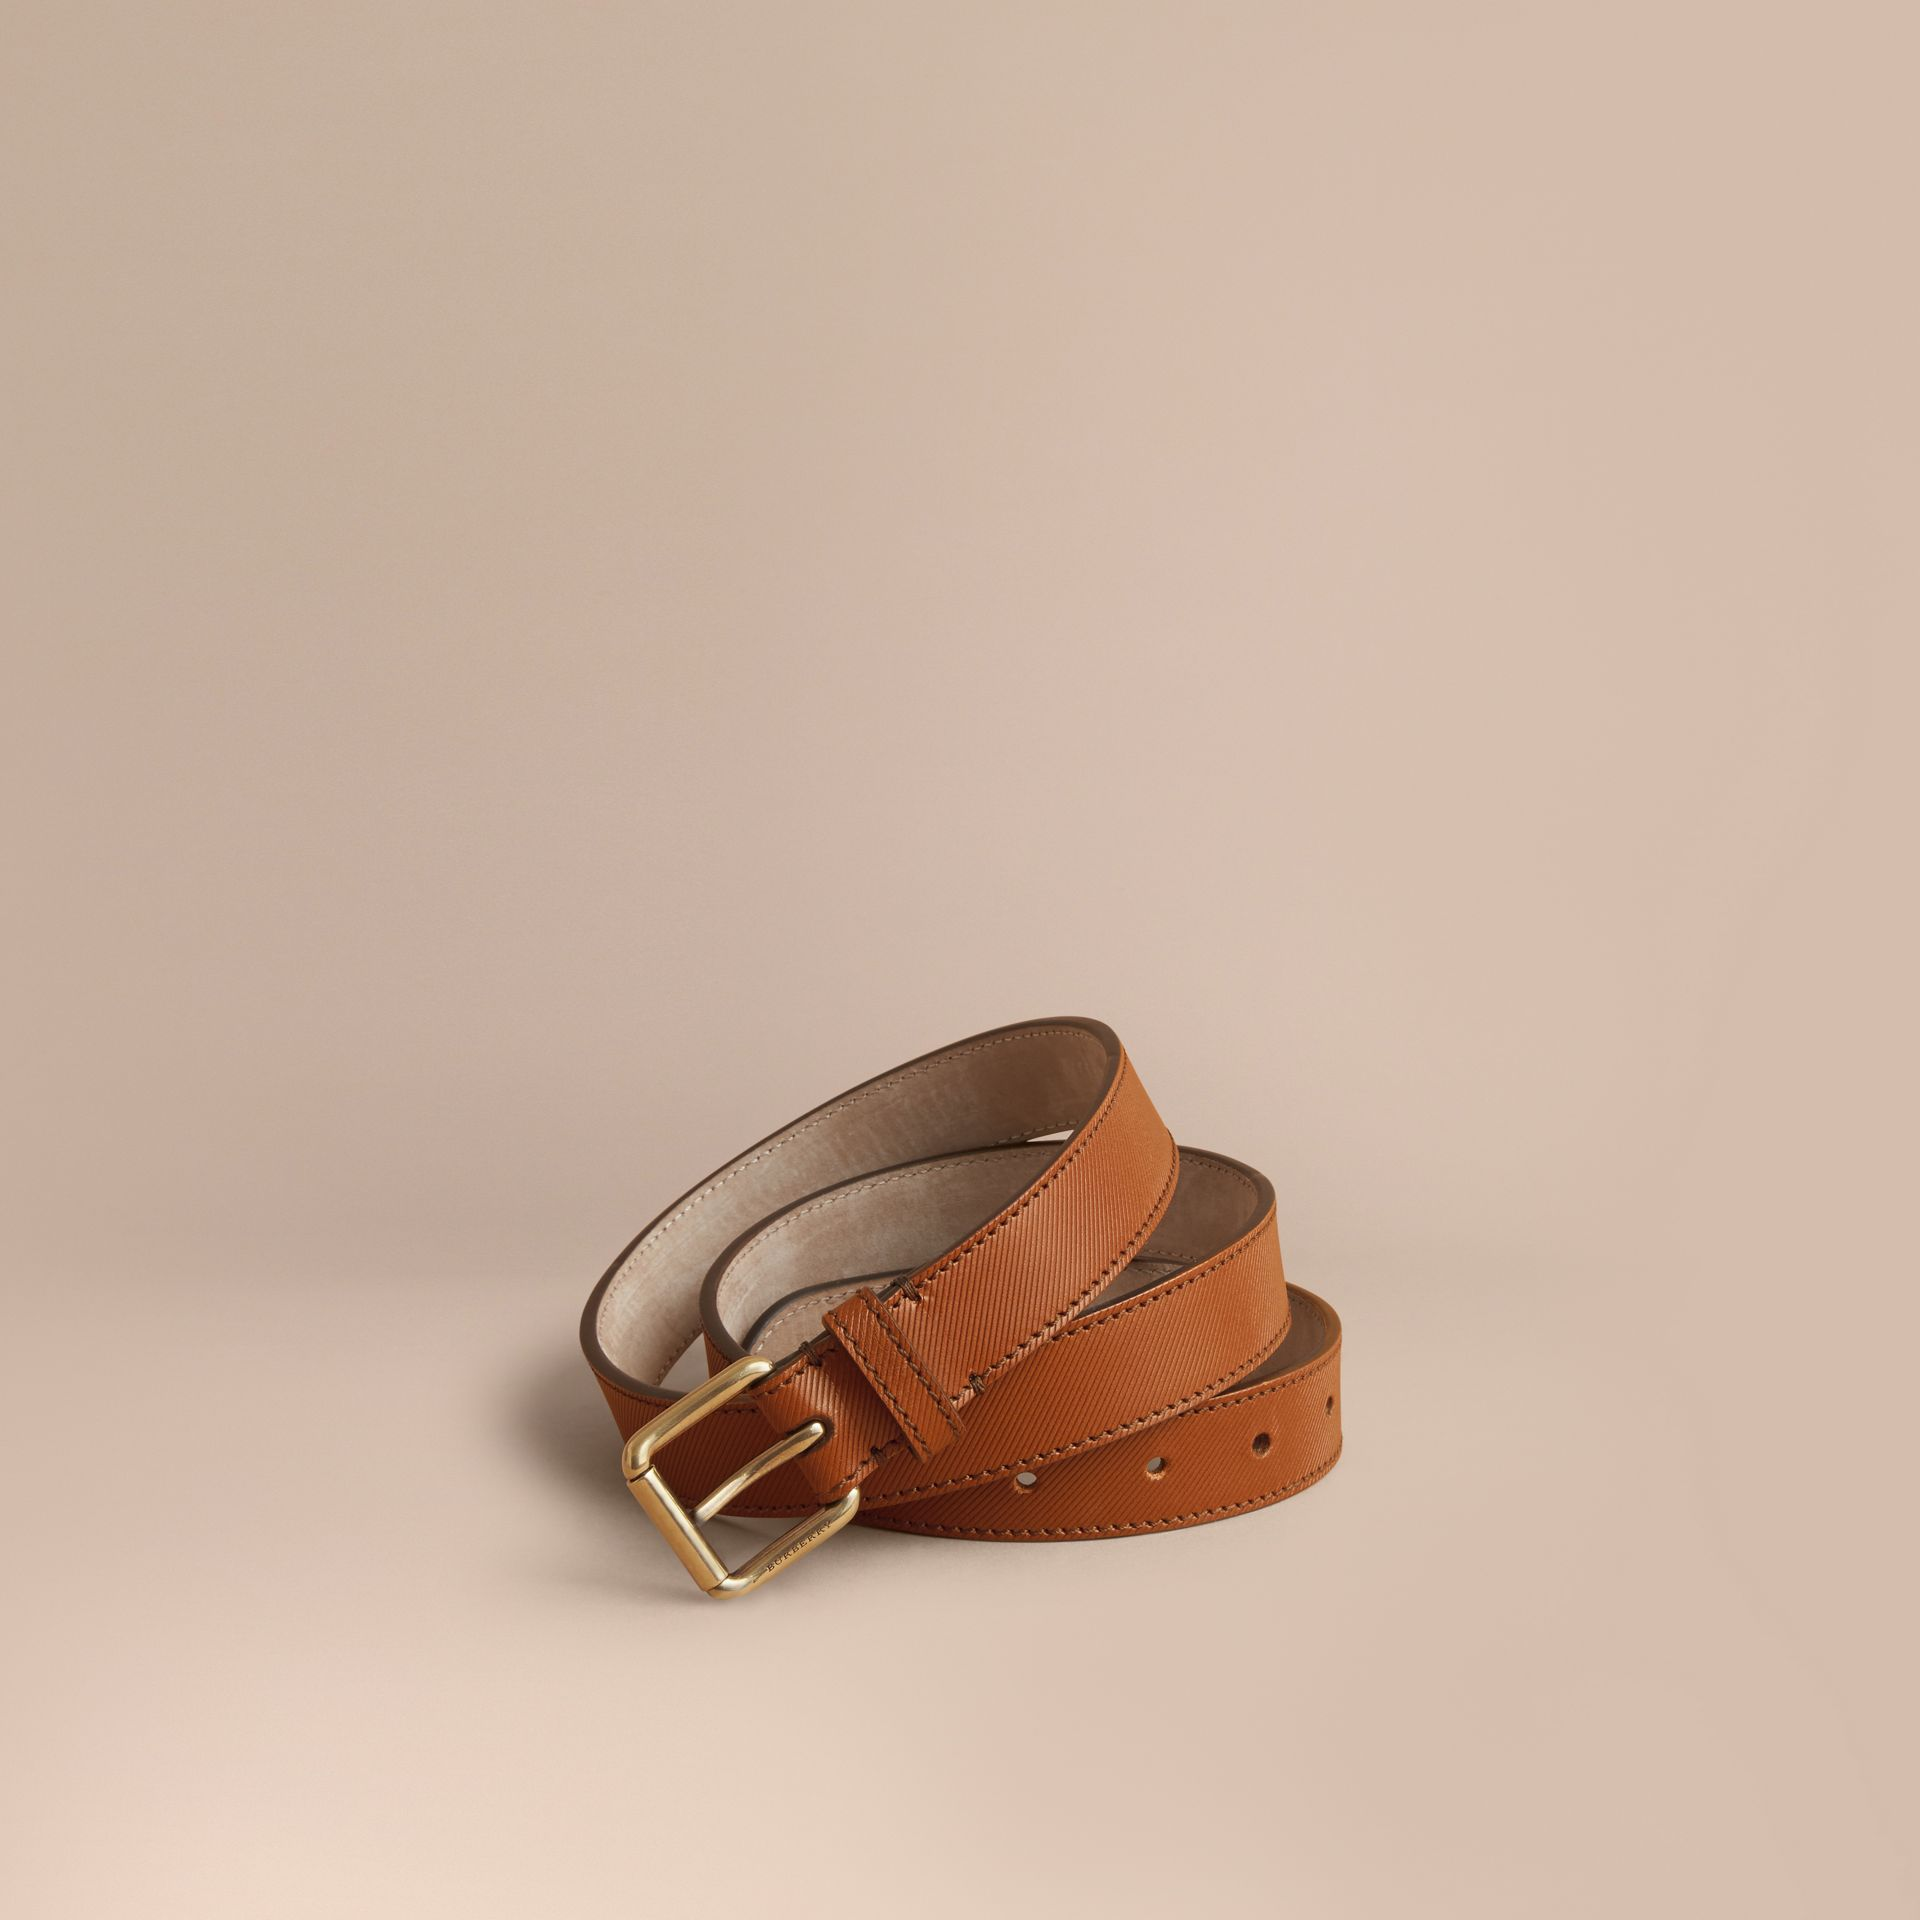 Trench Leather Belt in Tan - Men | Burberry Canada - gallery image 1